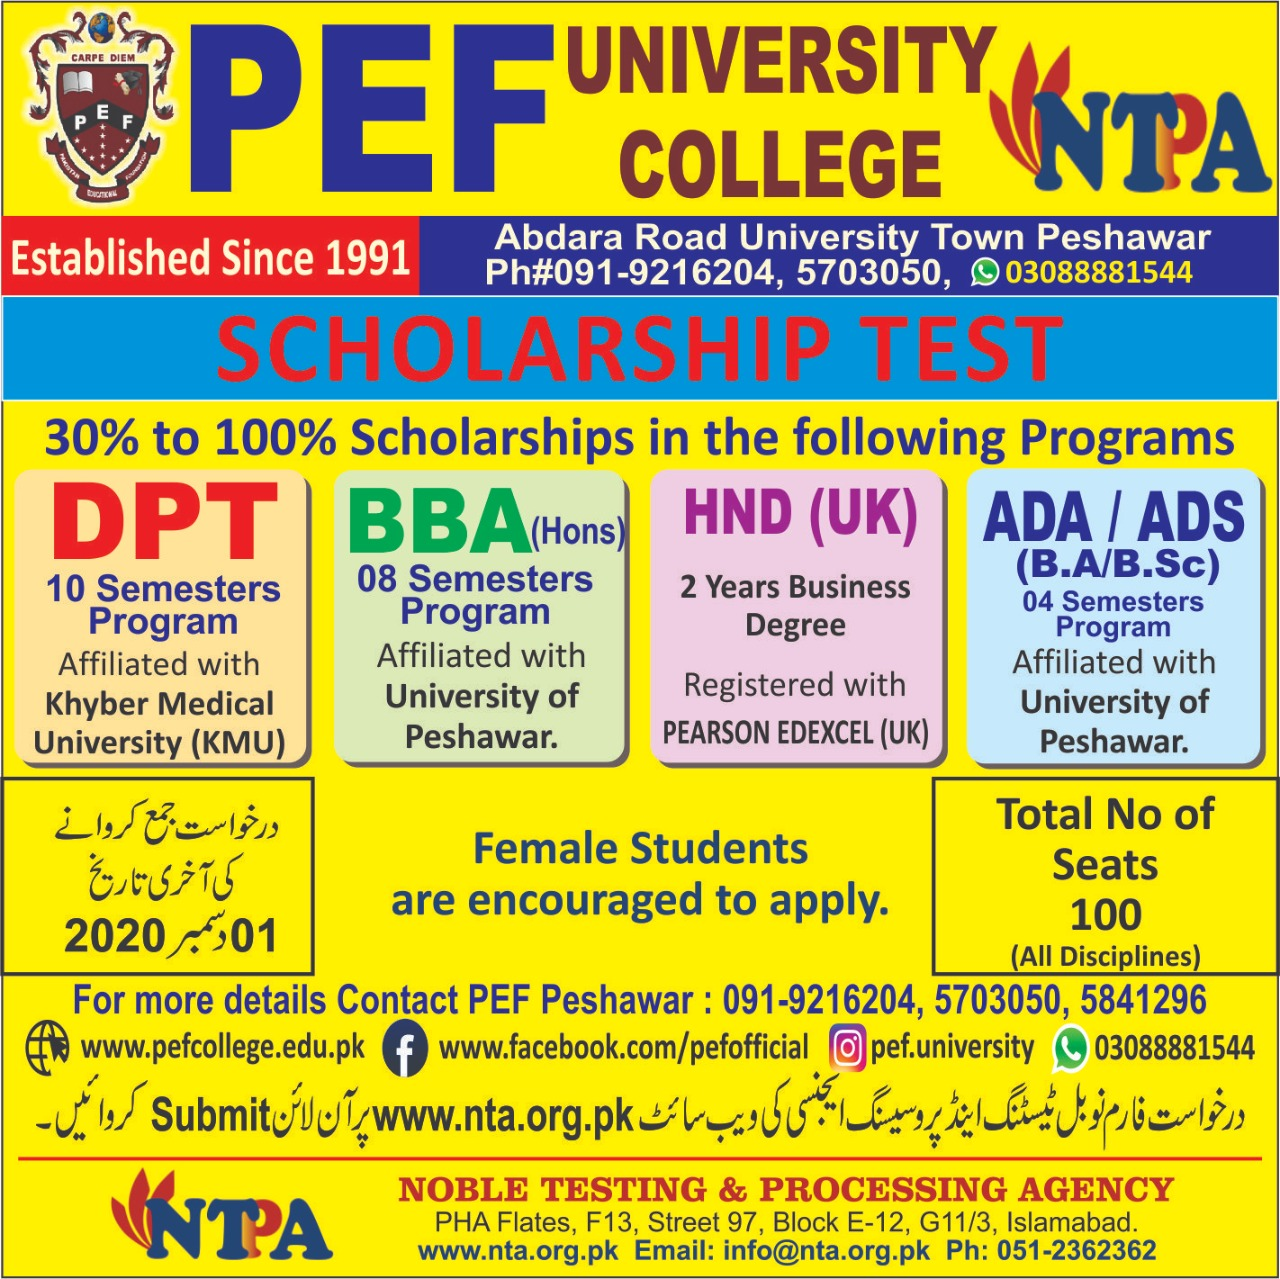 PEF University College Admission Scholarship Test NTPA Roll No Slip